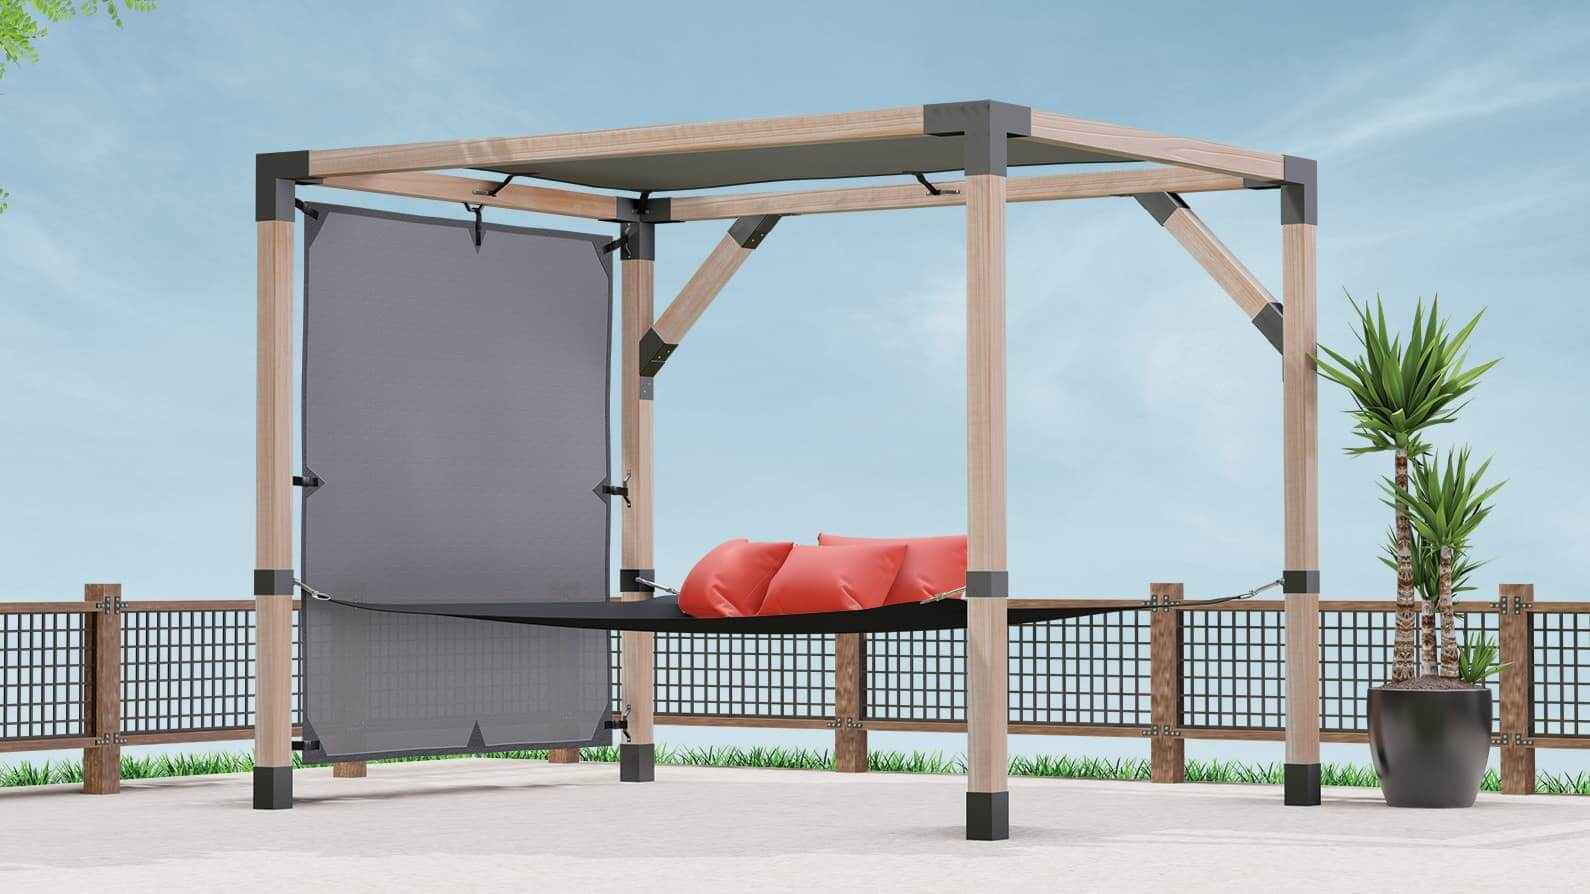 Introducing LINX: A Quick & Easy Pergola System